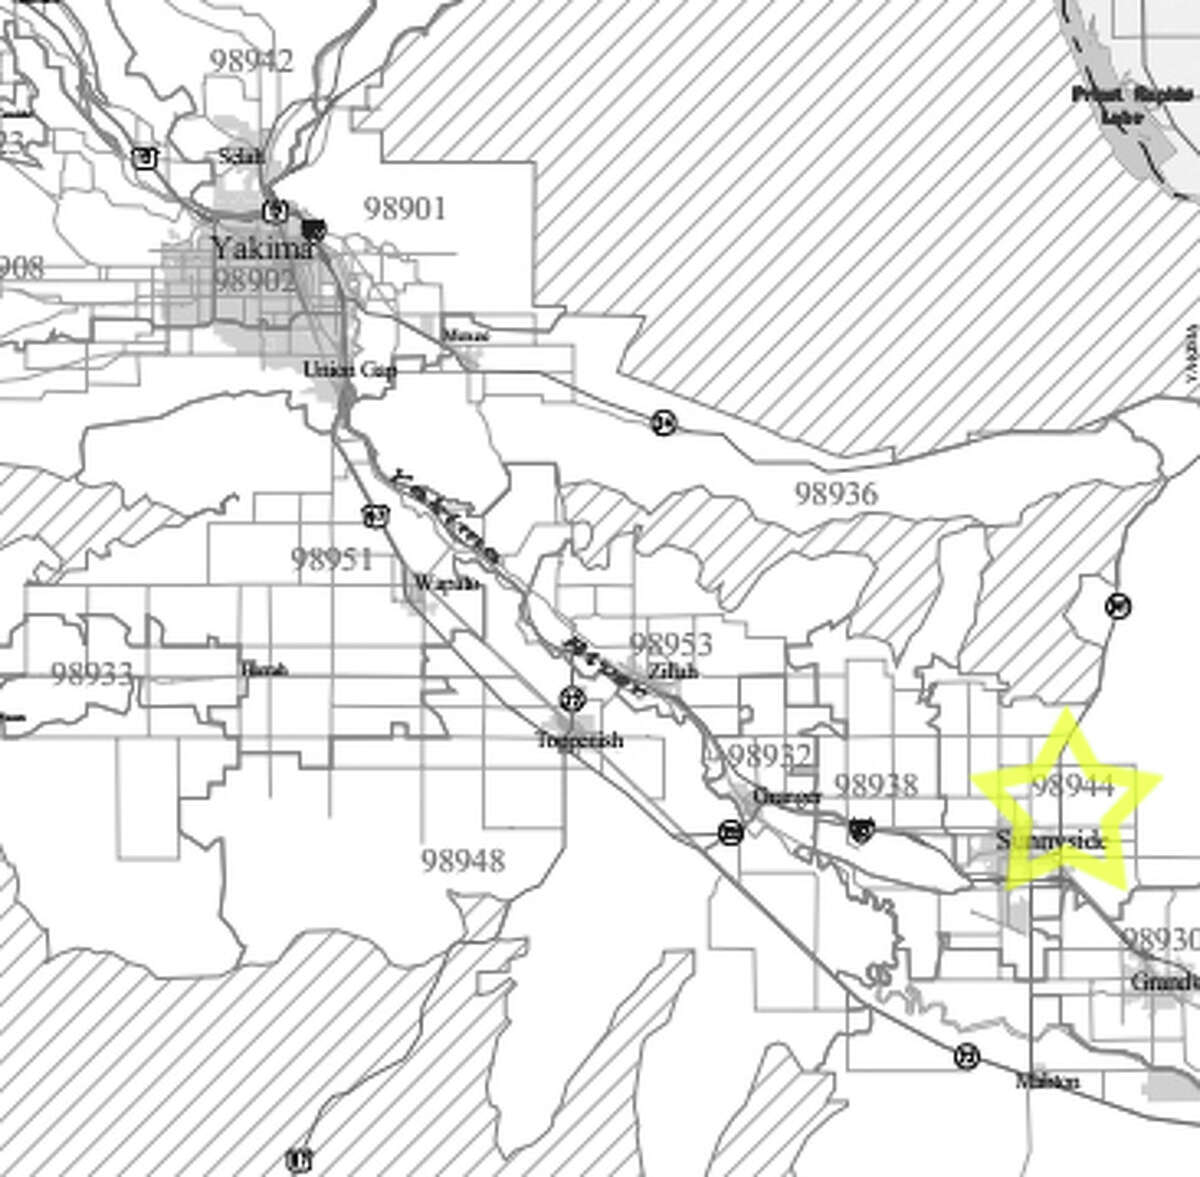 15. 98944: In this Sunnyside-area ZIP code, the average worker earned $17,602 in pay annually.